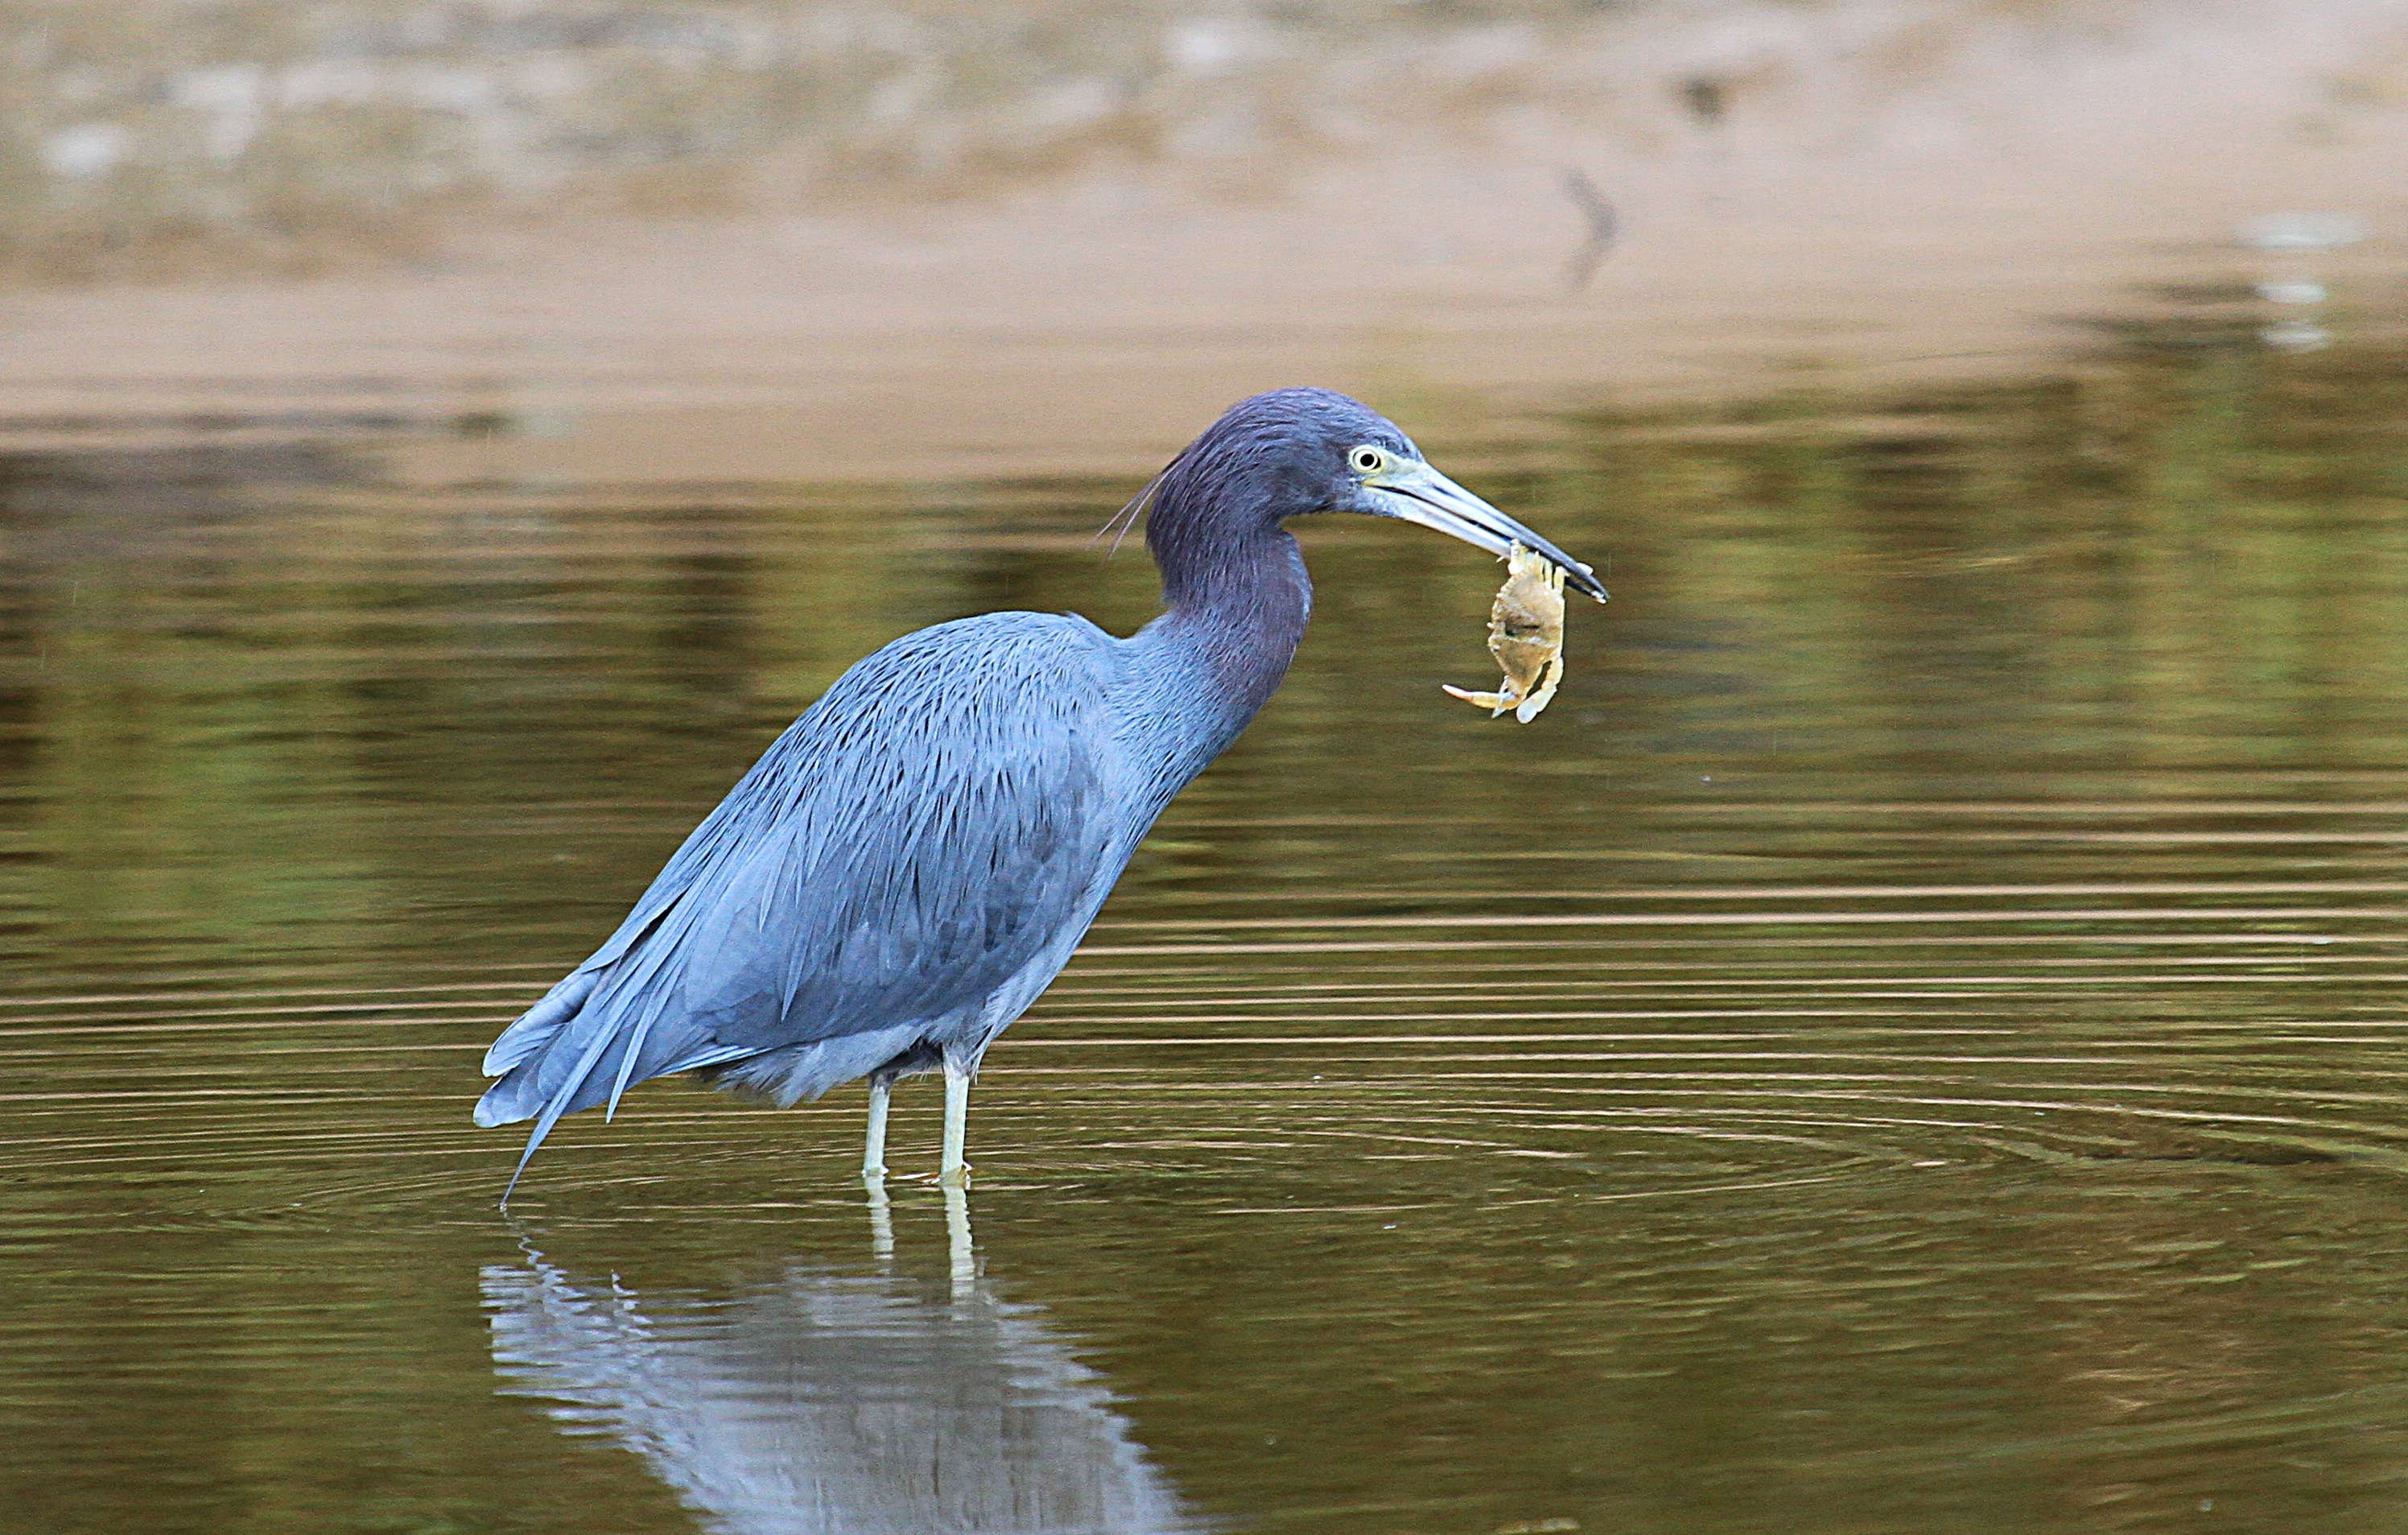 florida helicopter tour with Little Blue Heron on Things To Do In Miami besides 2131071847210442301 furthermore Palm Beach likewise Universal Studios Los Angeles as well Belize Barrier Reef.